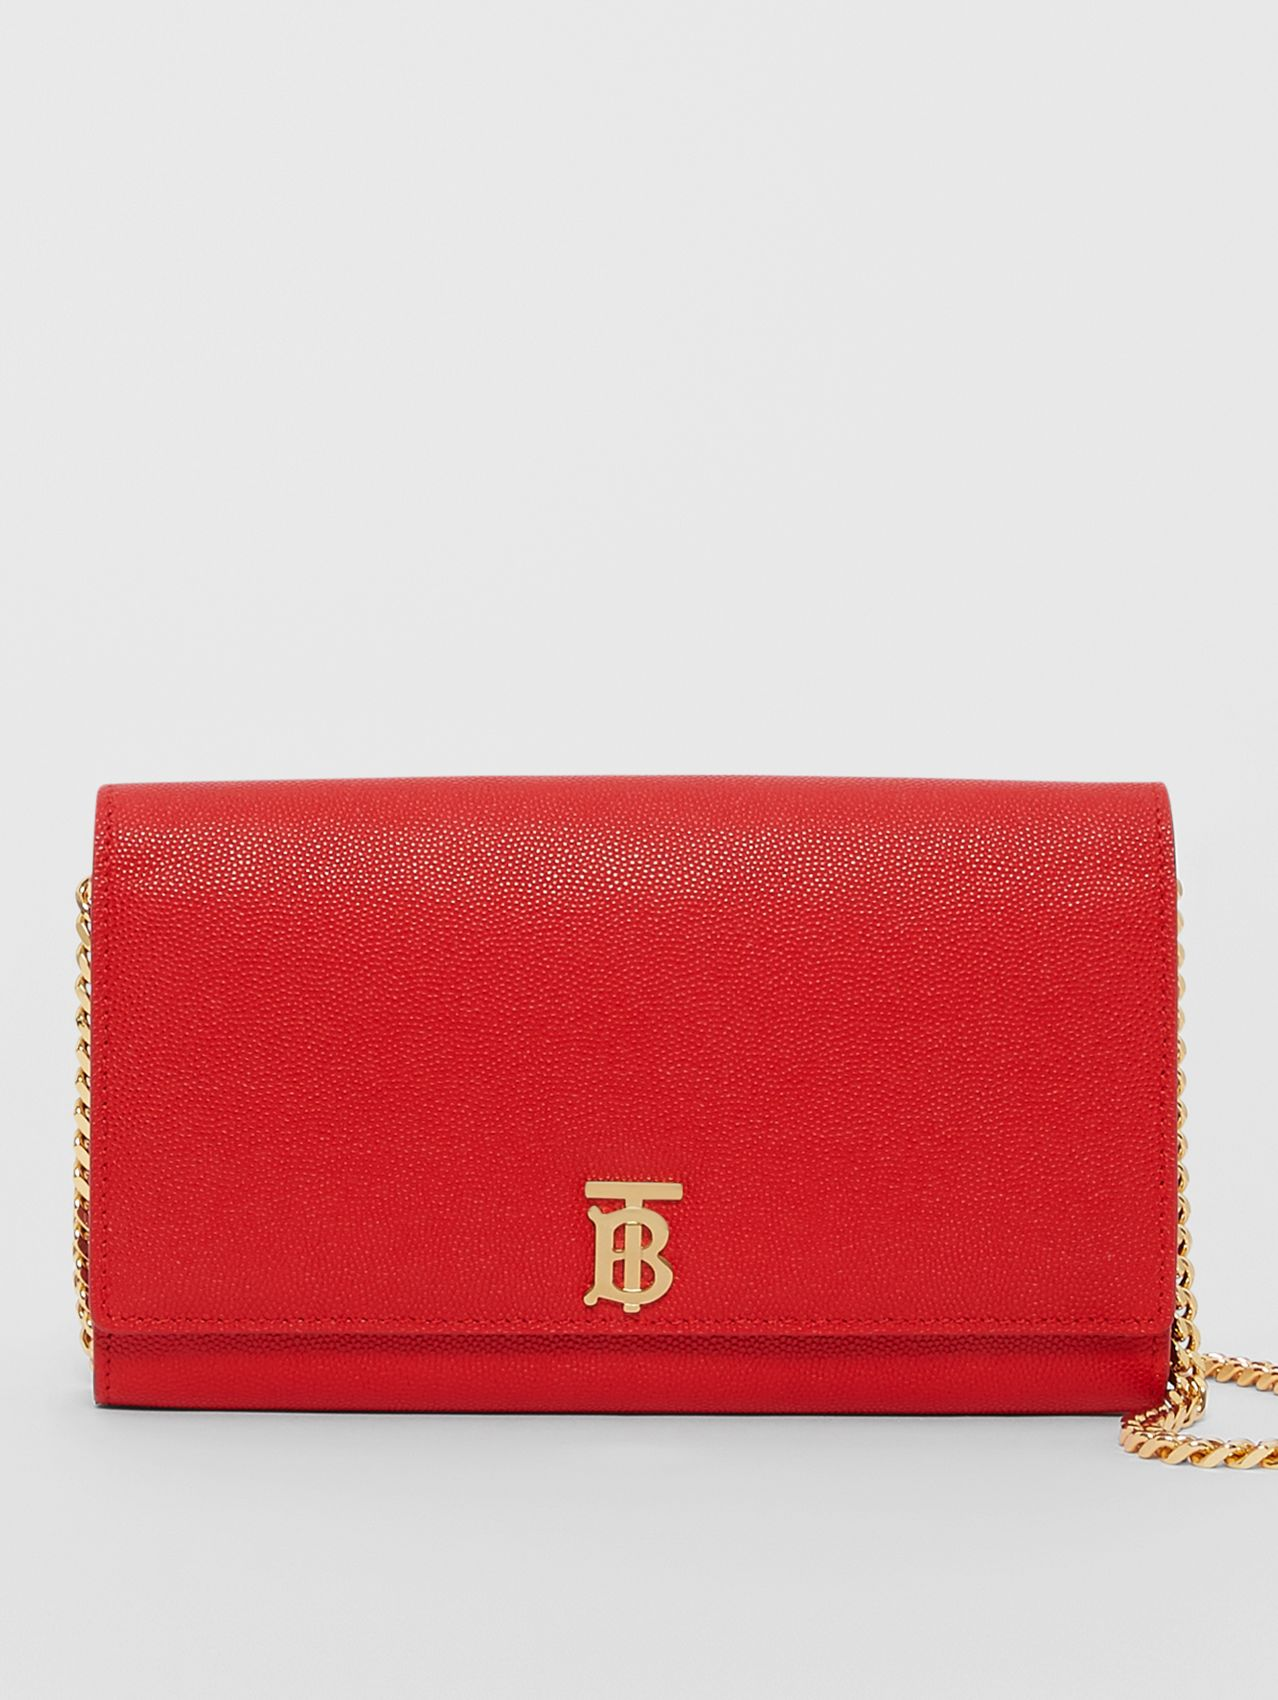 Monogram Motif Leather Wallet with Detachable Strap in Bright Red